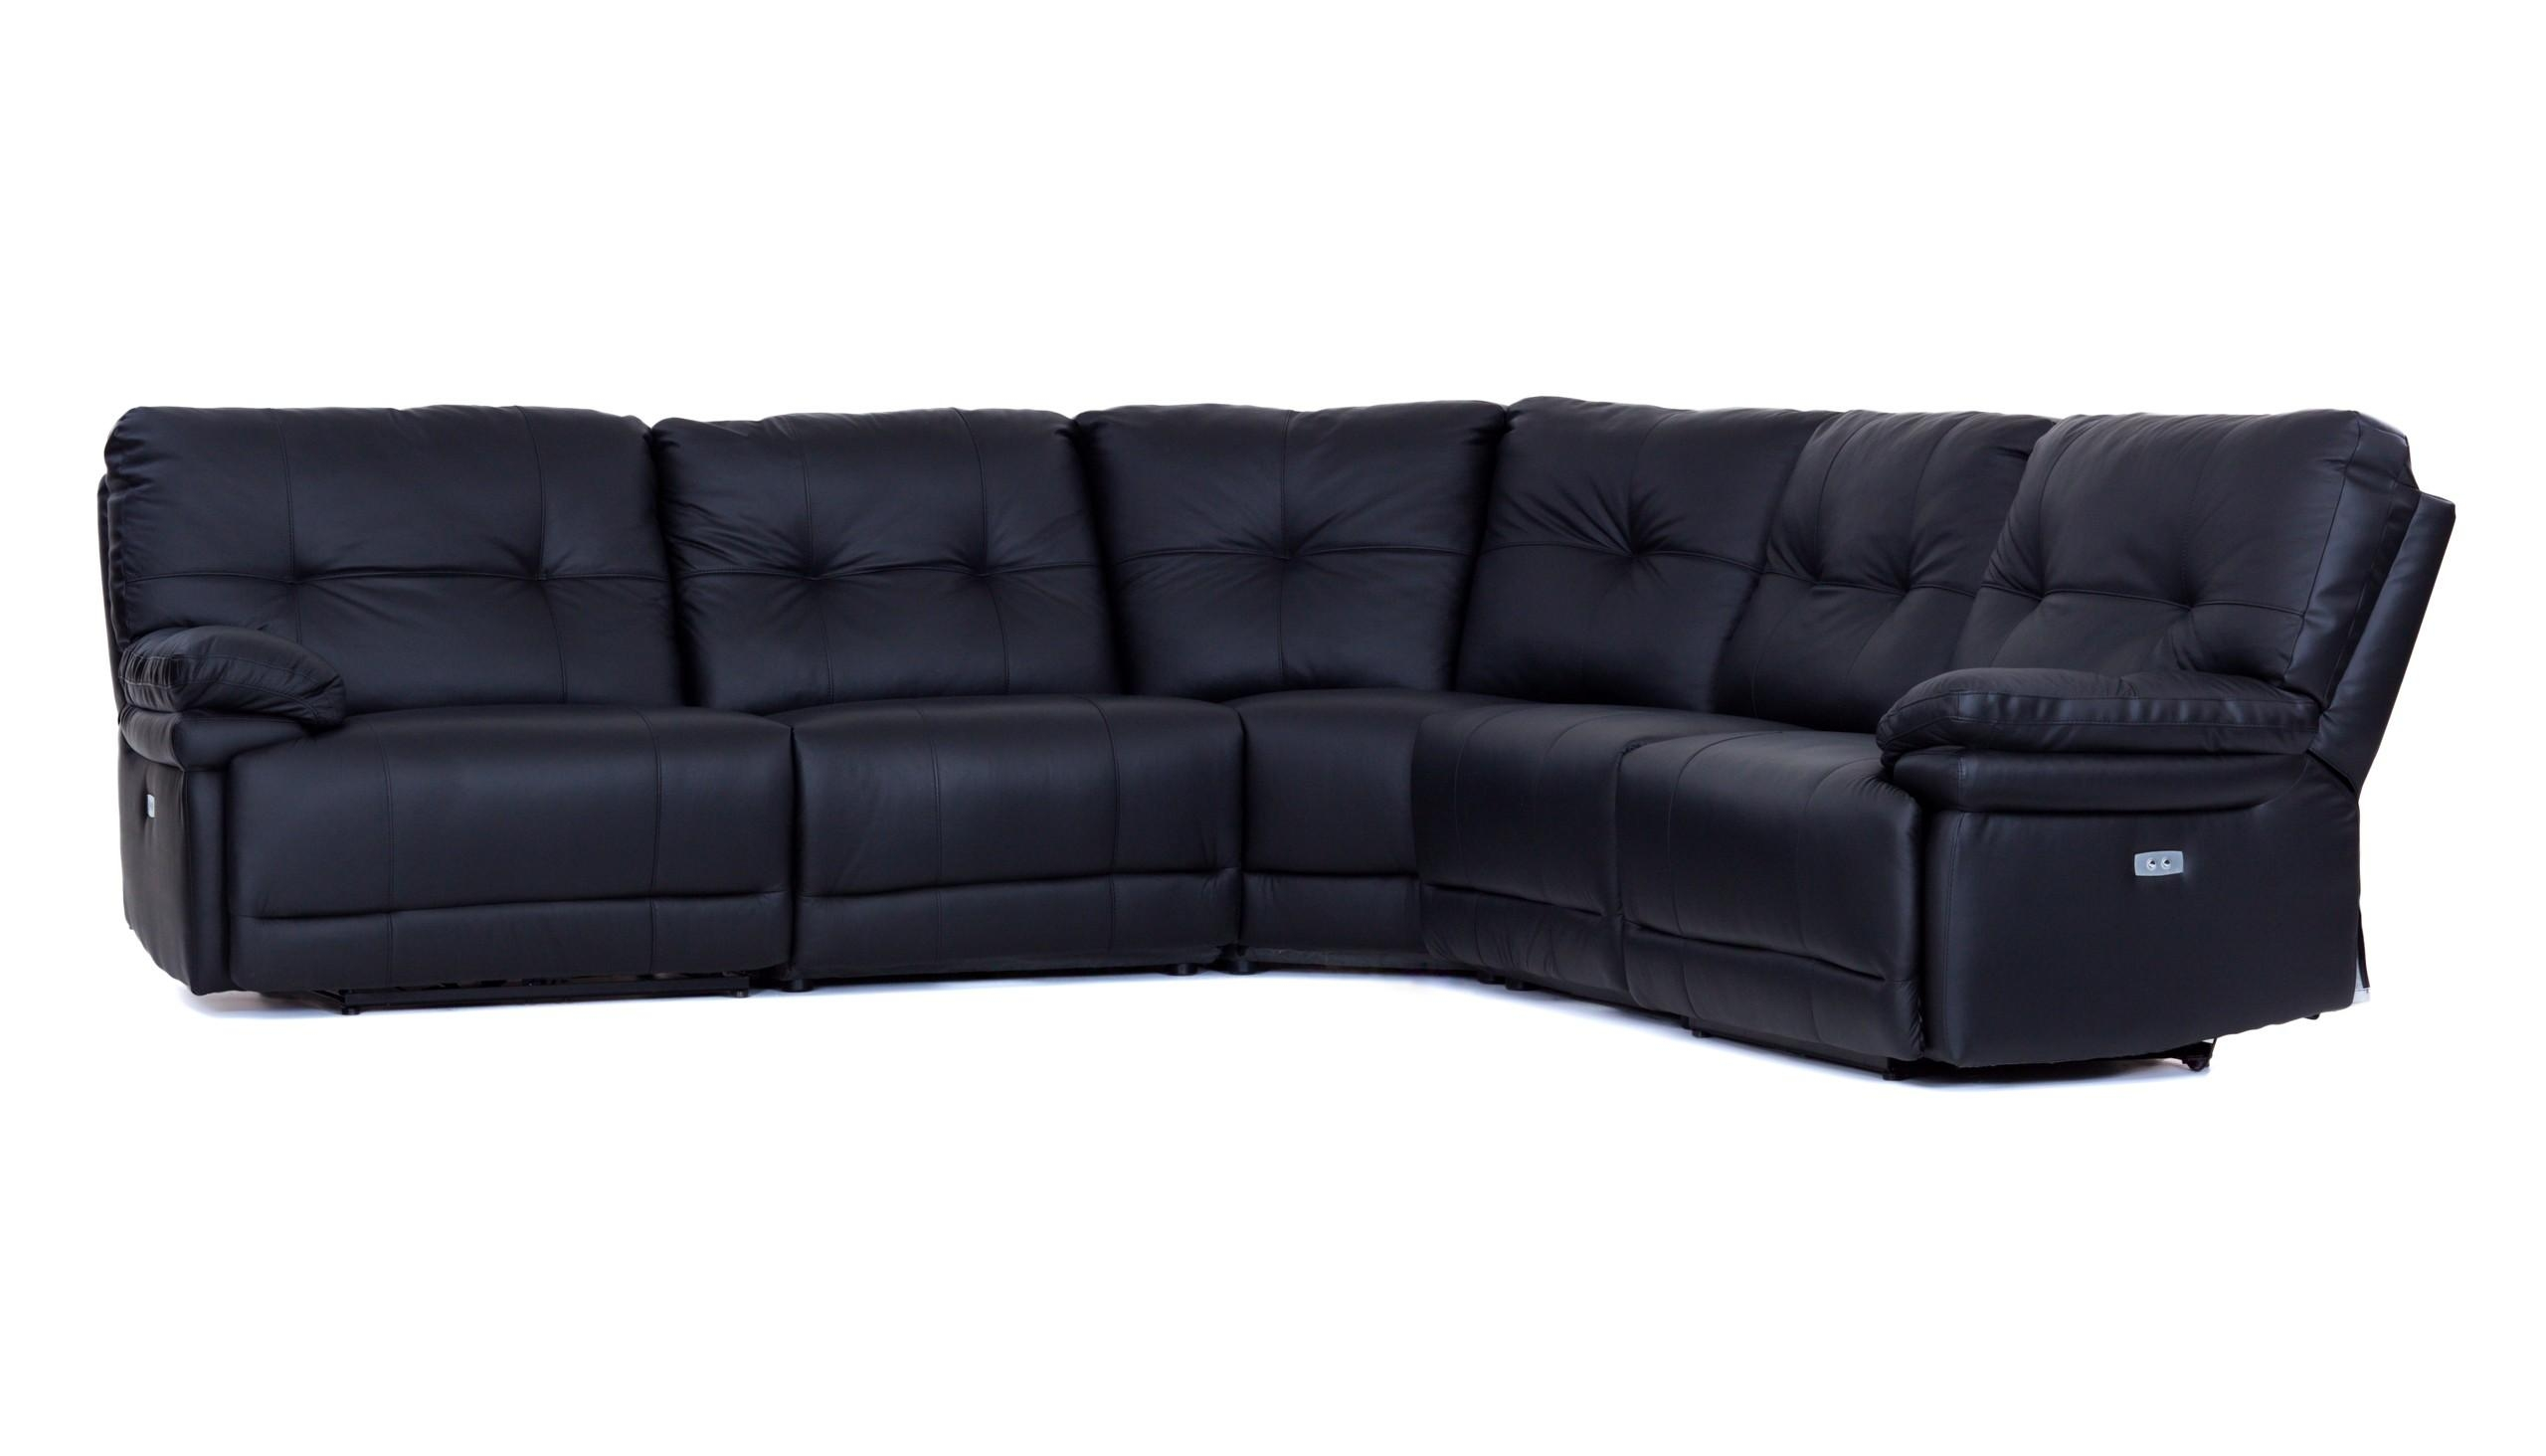 Large Manual Recliner Corner Sofa From The Milan Range | Ahf Furniture Pertaining To Corner Sofa And Swivel Chairs (Image 16 of 20)